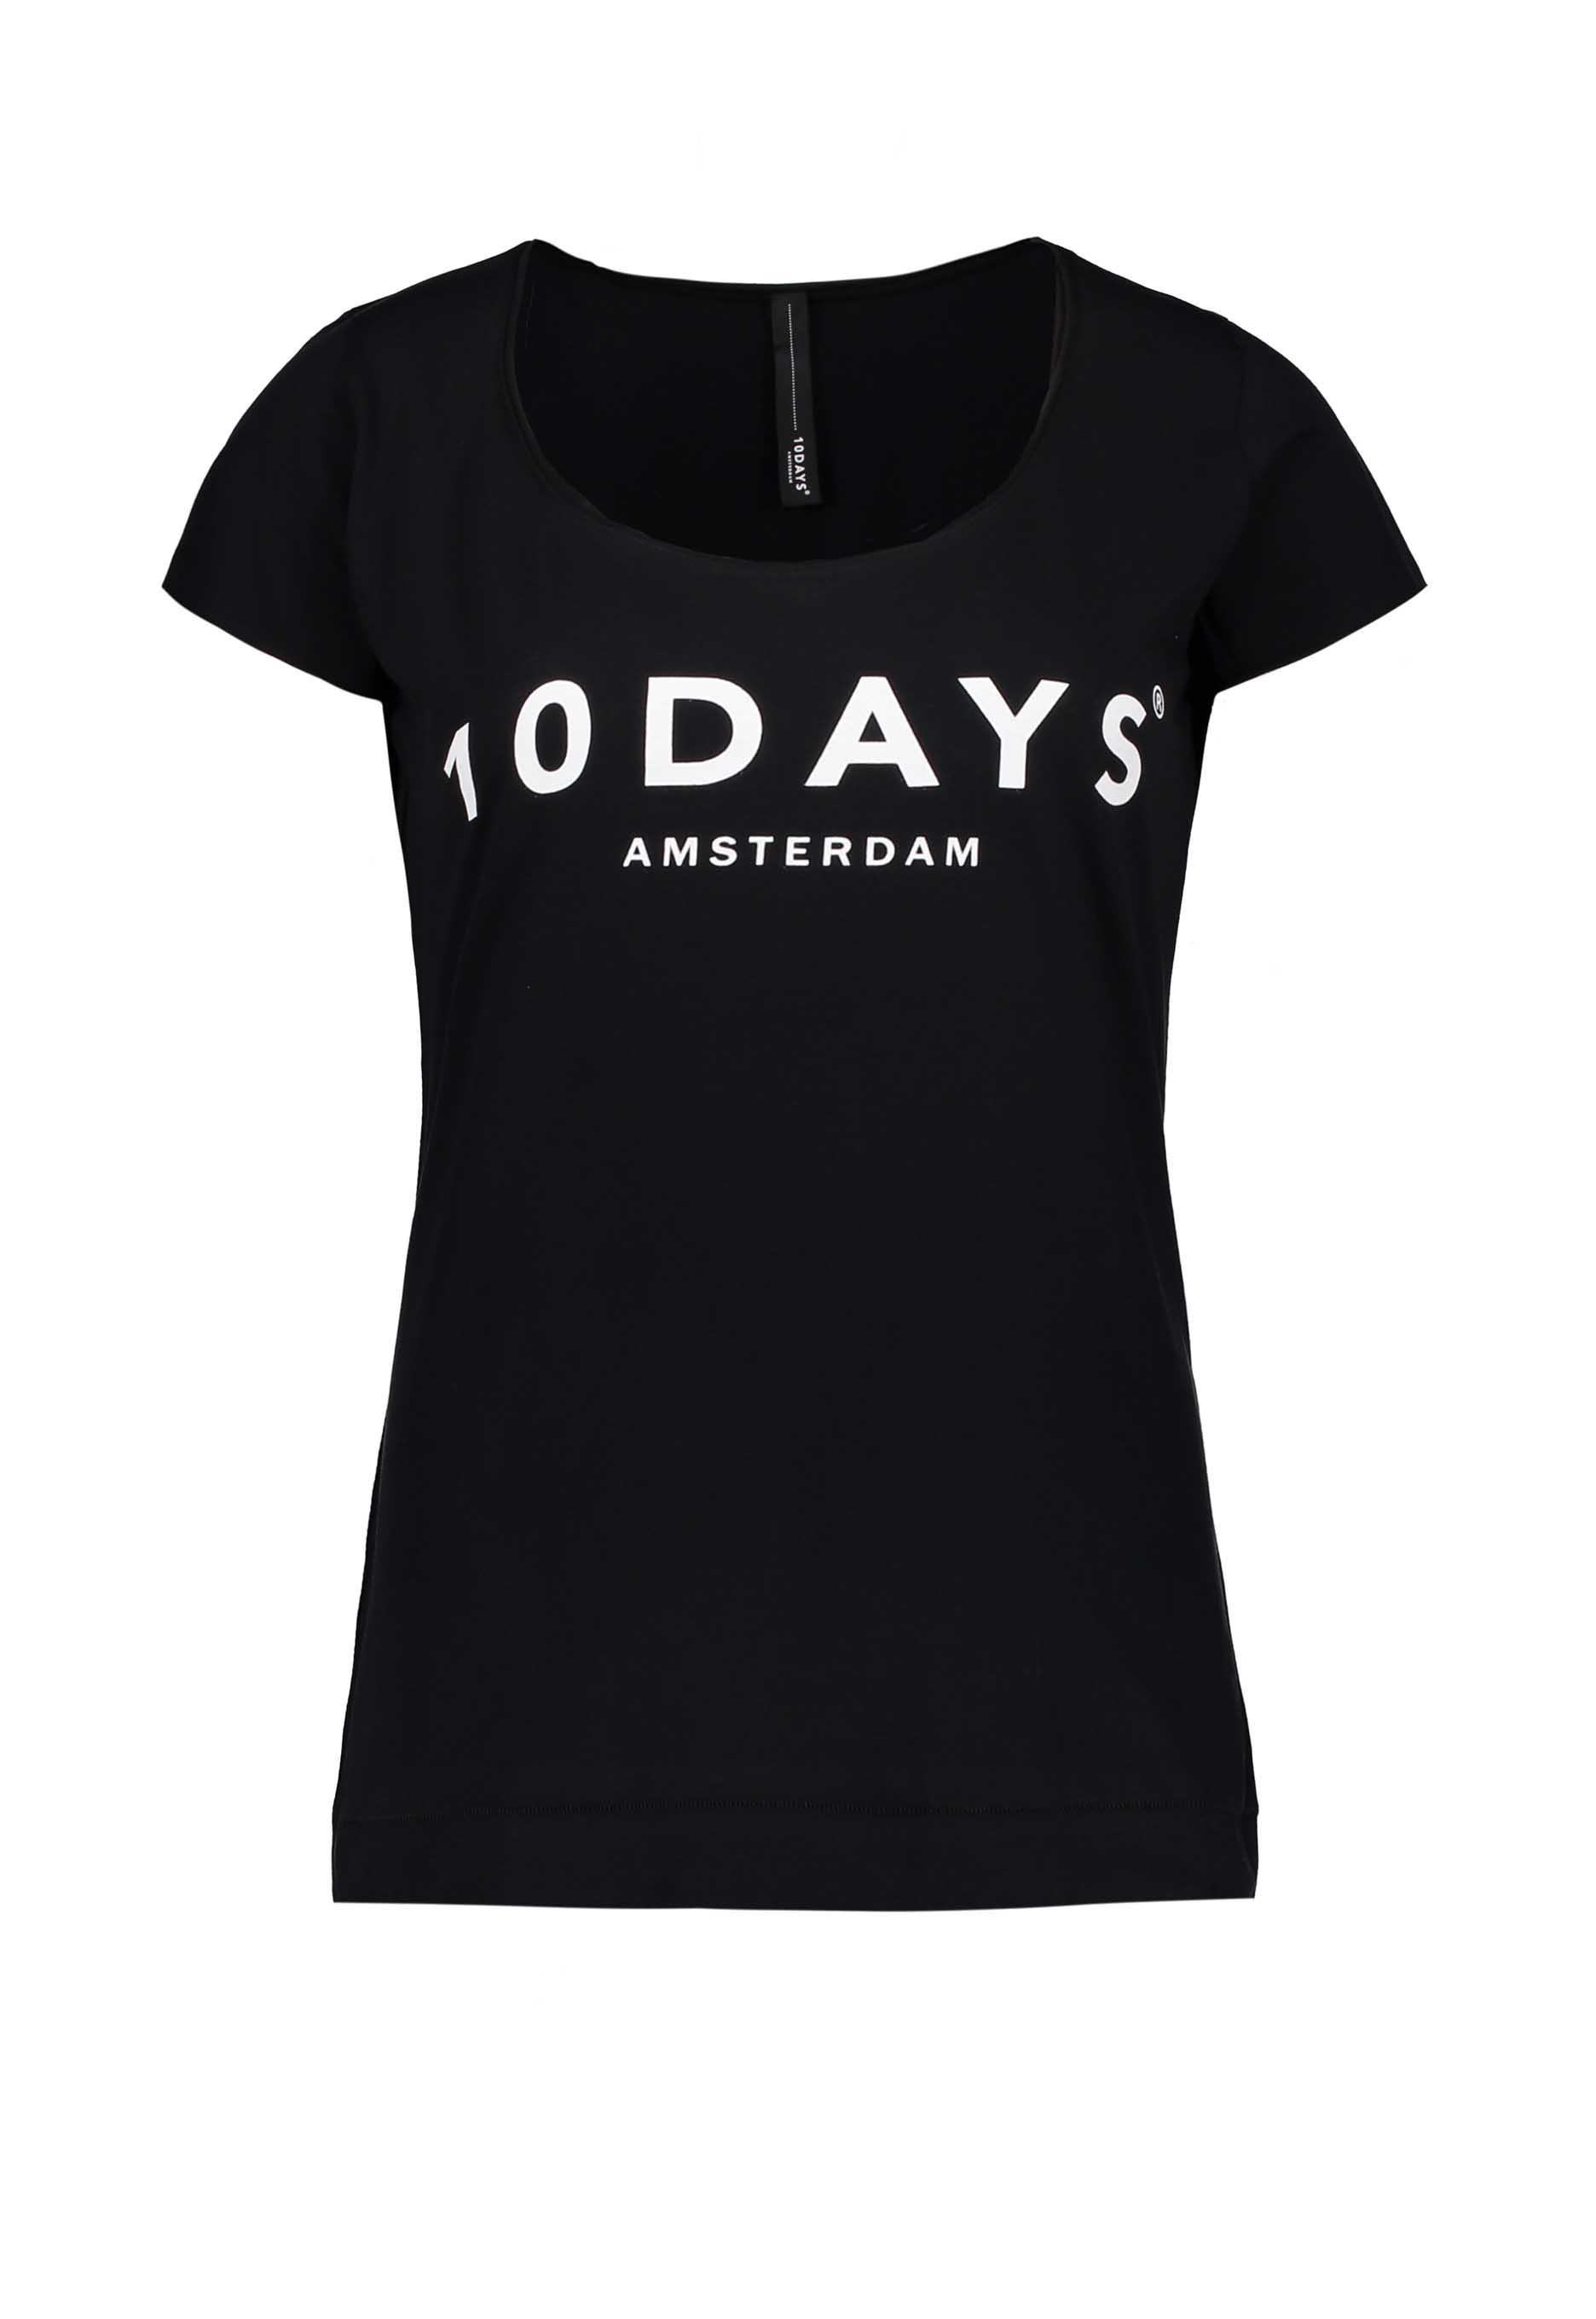 10DAYS The Tee T-shirt